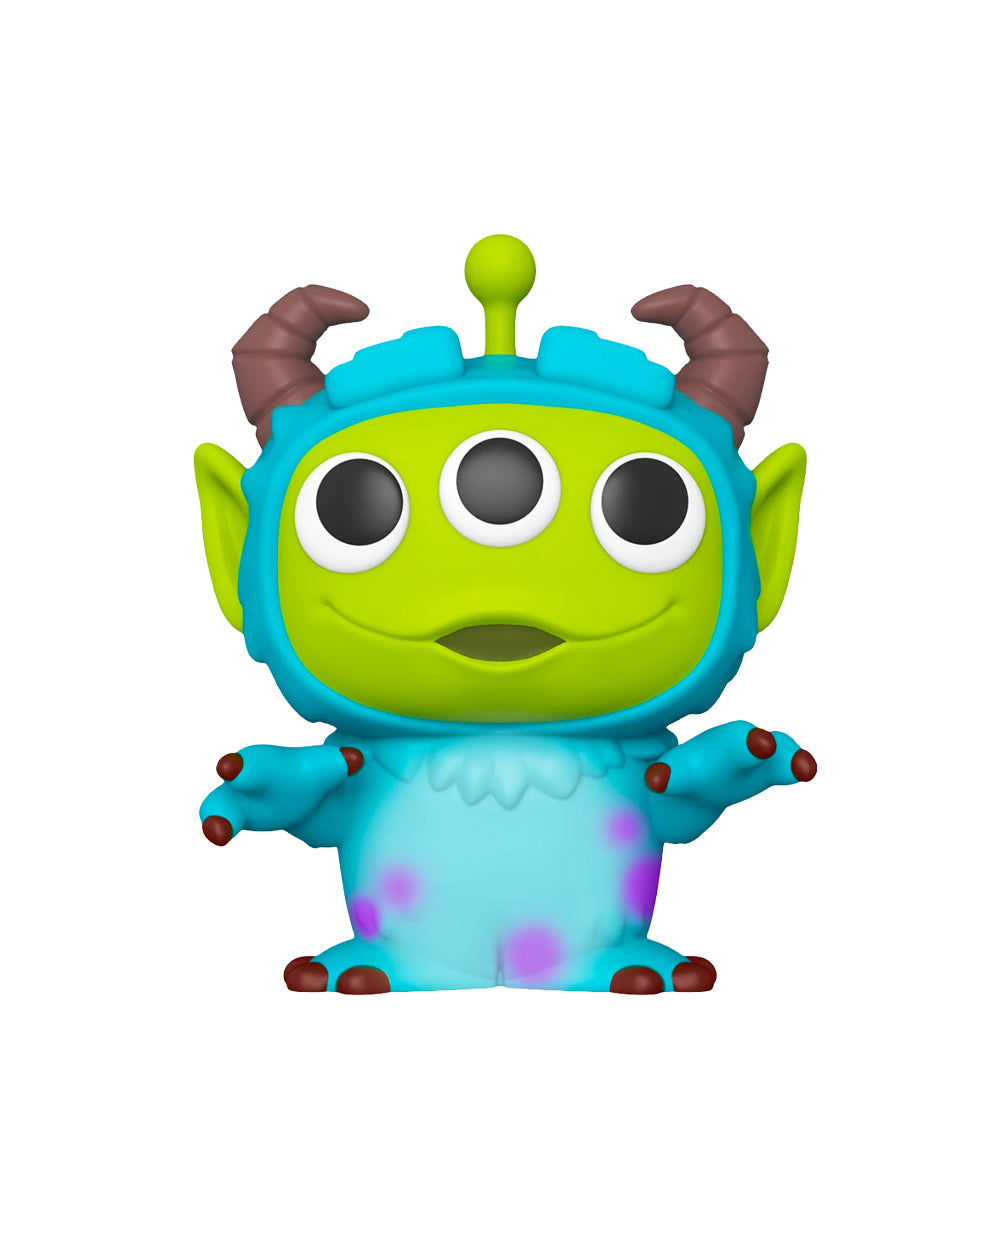 Funko POP - Alien Toy Story Sulley Remix #759 - The Pink a la Mode - Funko - The Pink a la Mode